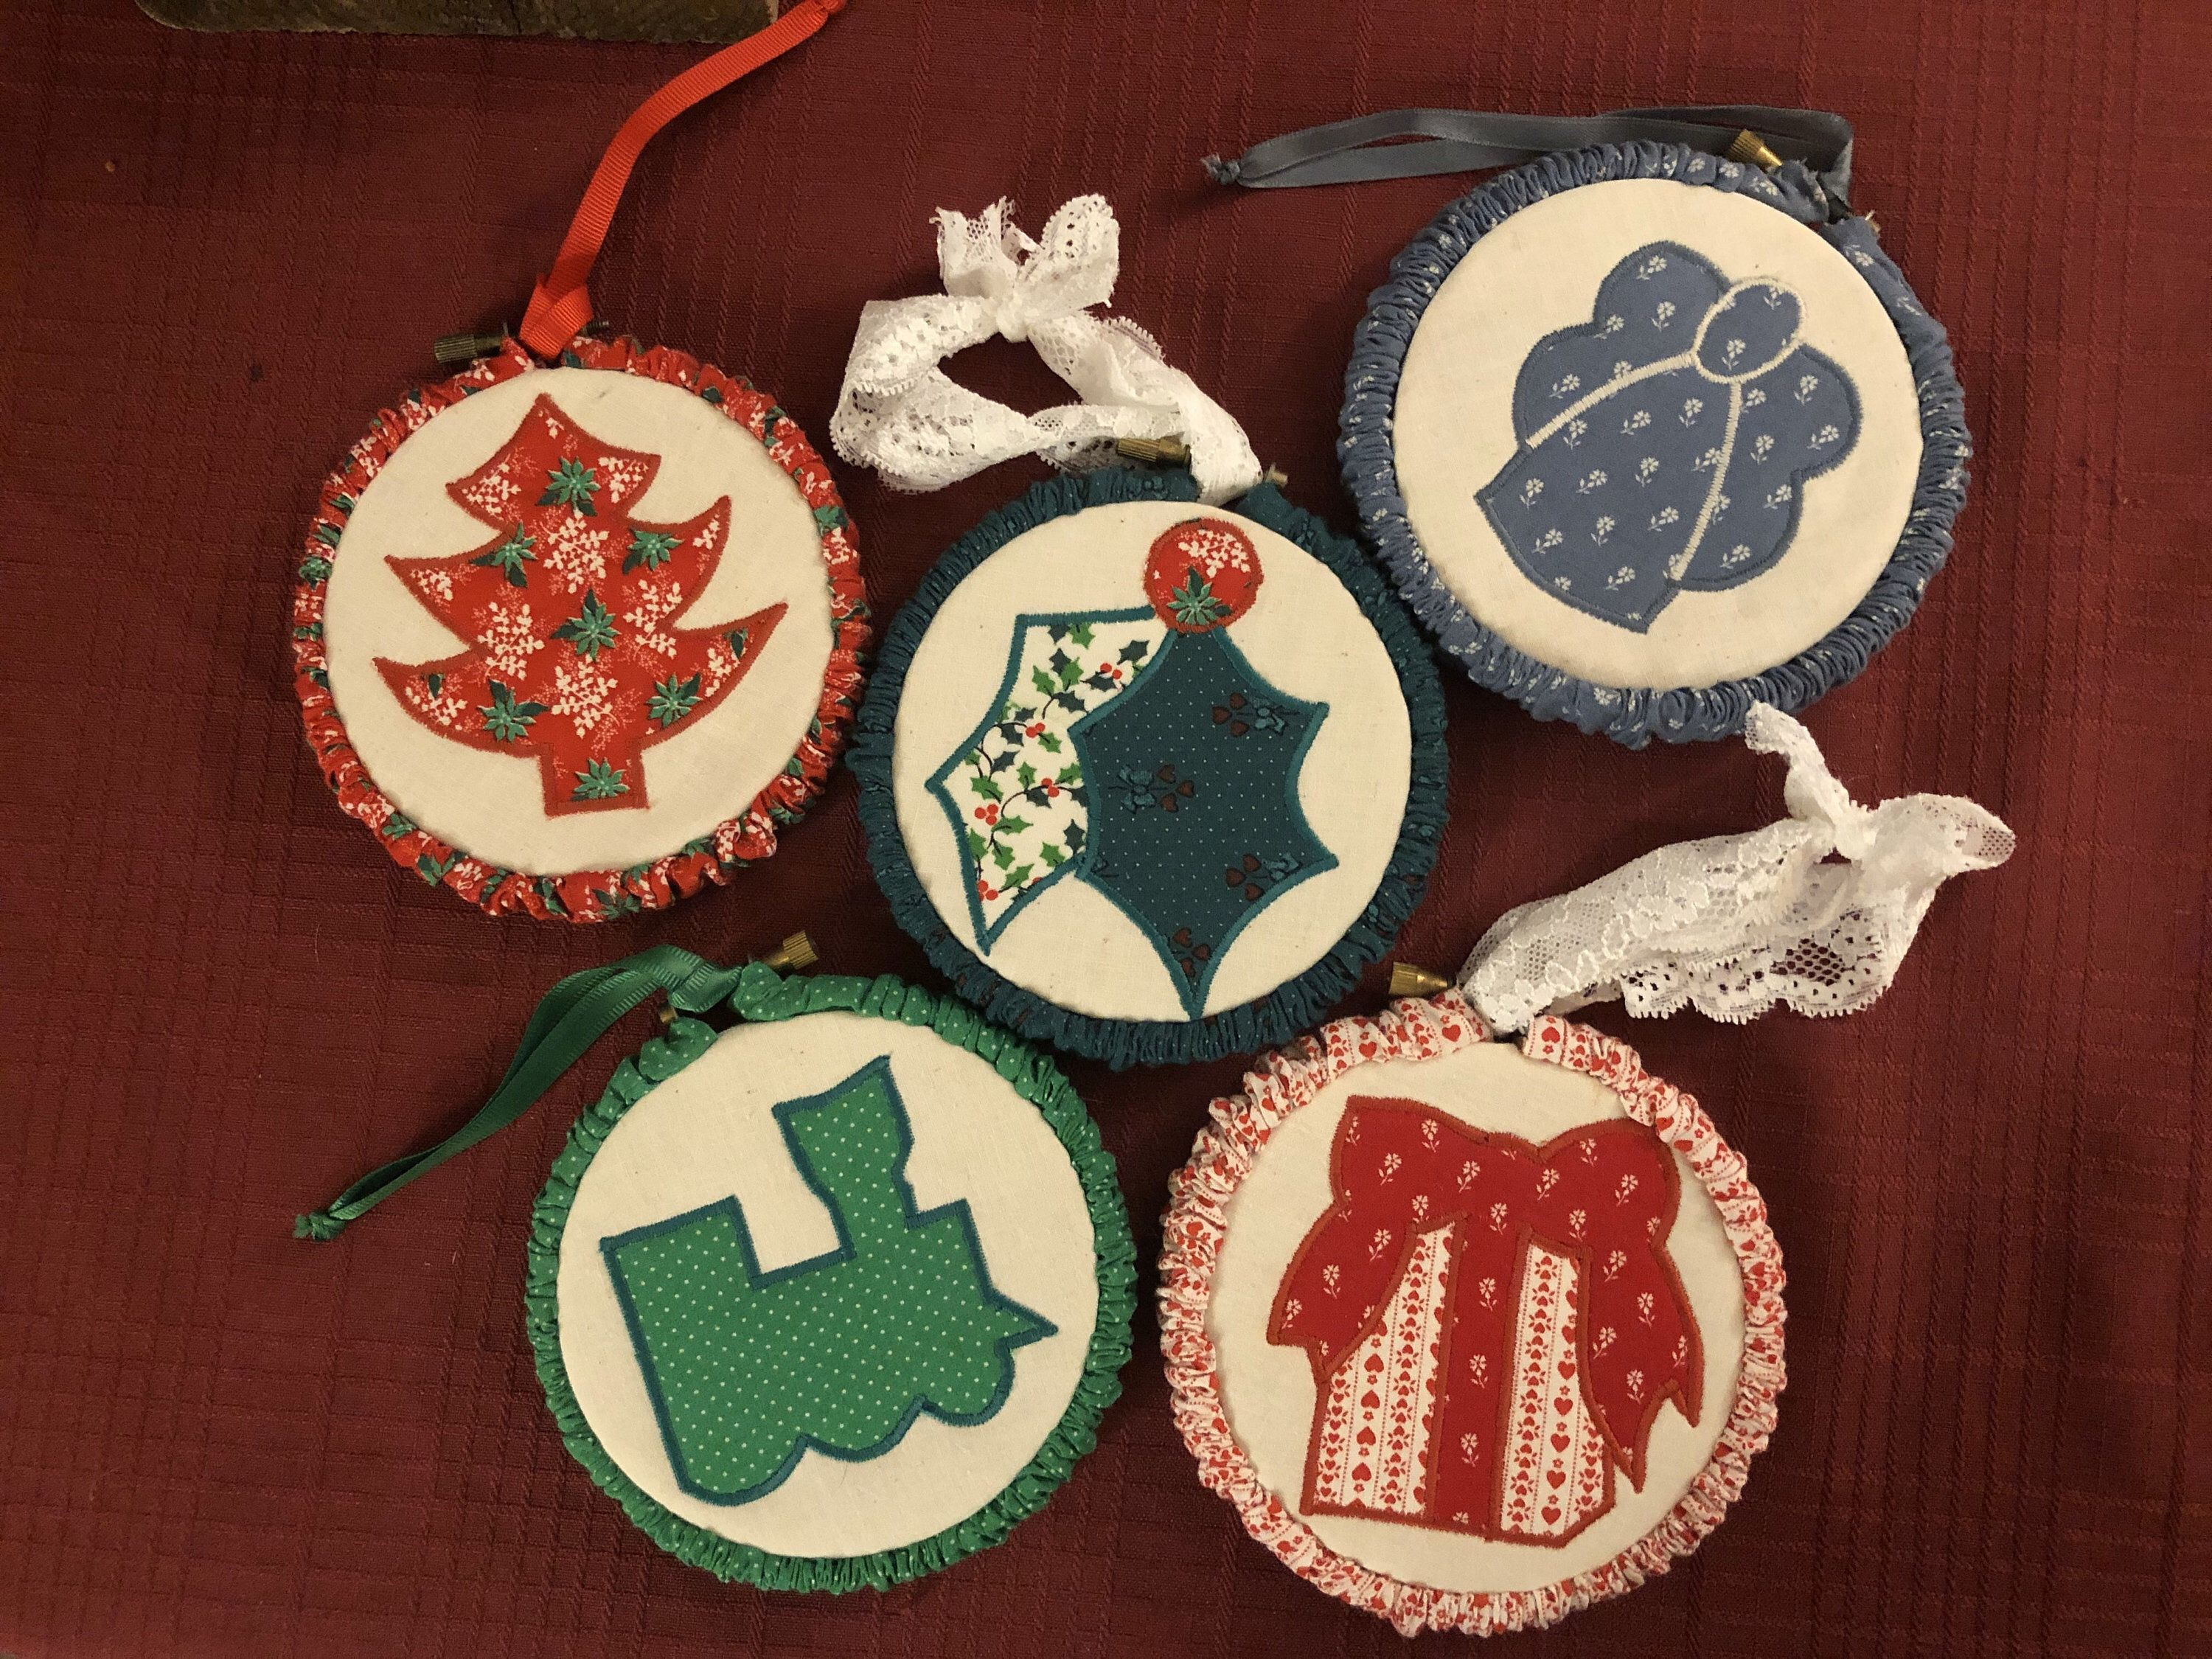 In my #etsy shop: %Vintage #ChristmasQuiltBlock #Ornaments Machine Embroidered Framed Bamboo Embroidery Rings 1980's #Train #Holly #Tree #Angel %Gift Gathered Trim #merrychristmas #merrychristmas2019 #happyholidays #happyholidays2019 #homedecor #1980s #embroidered #handmade